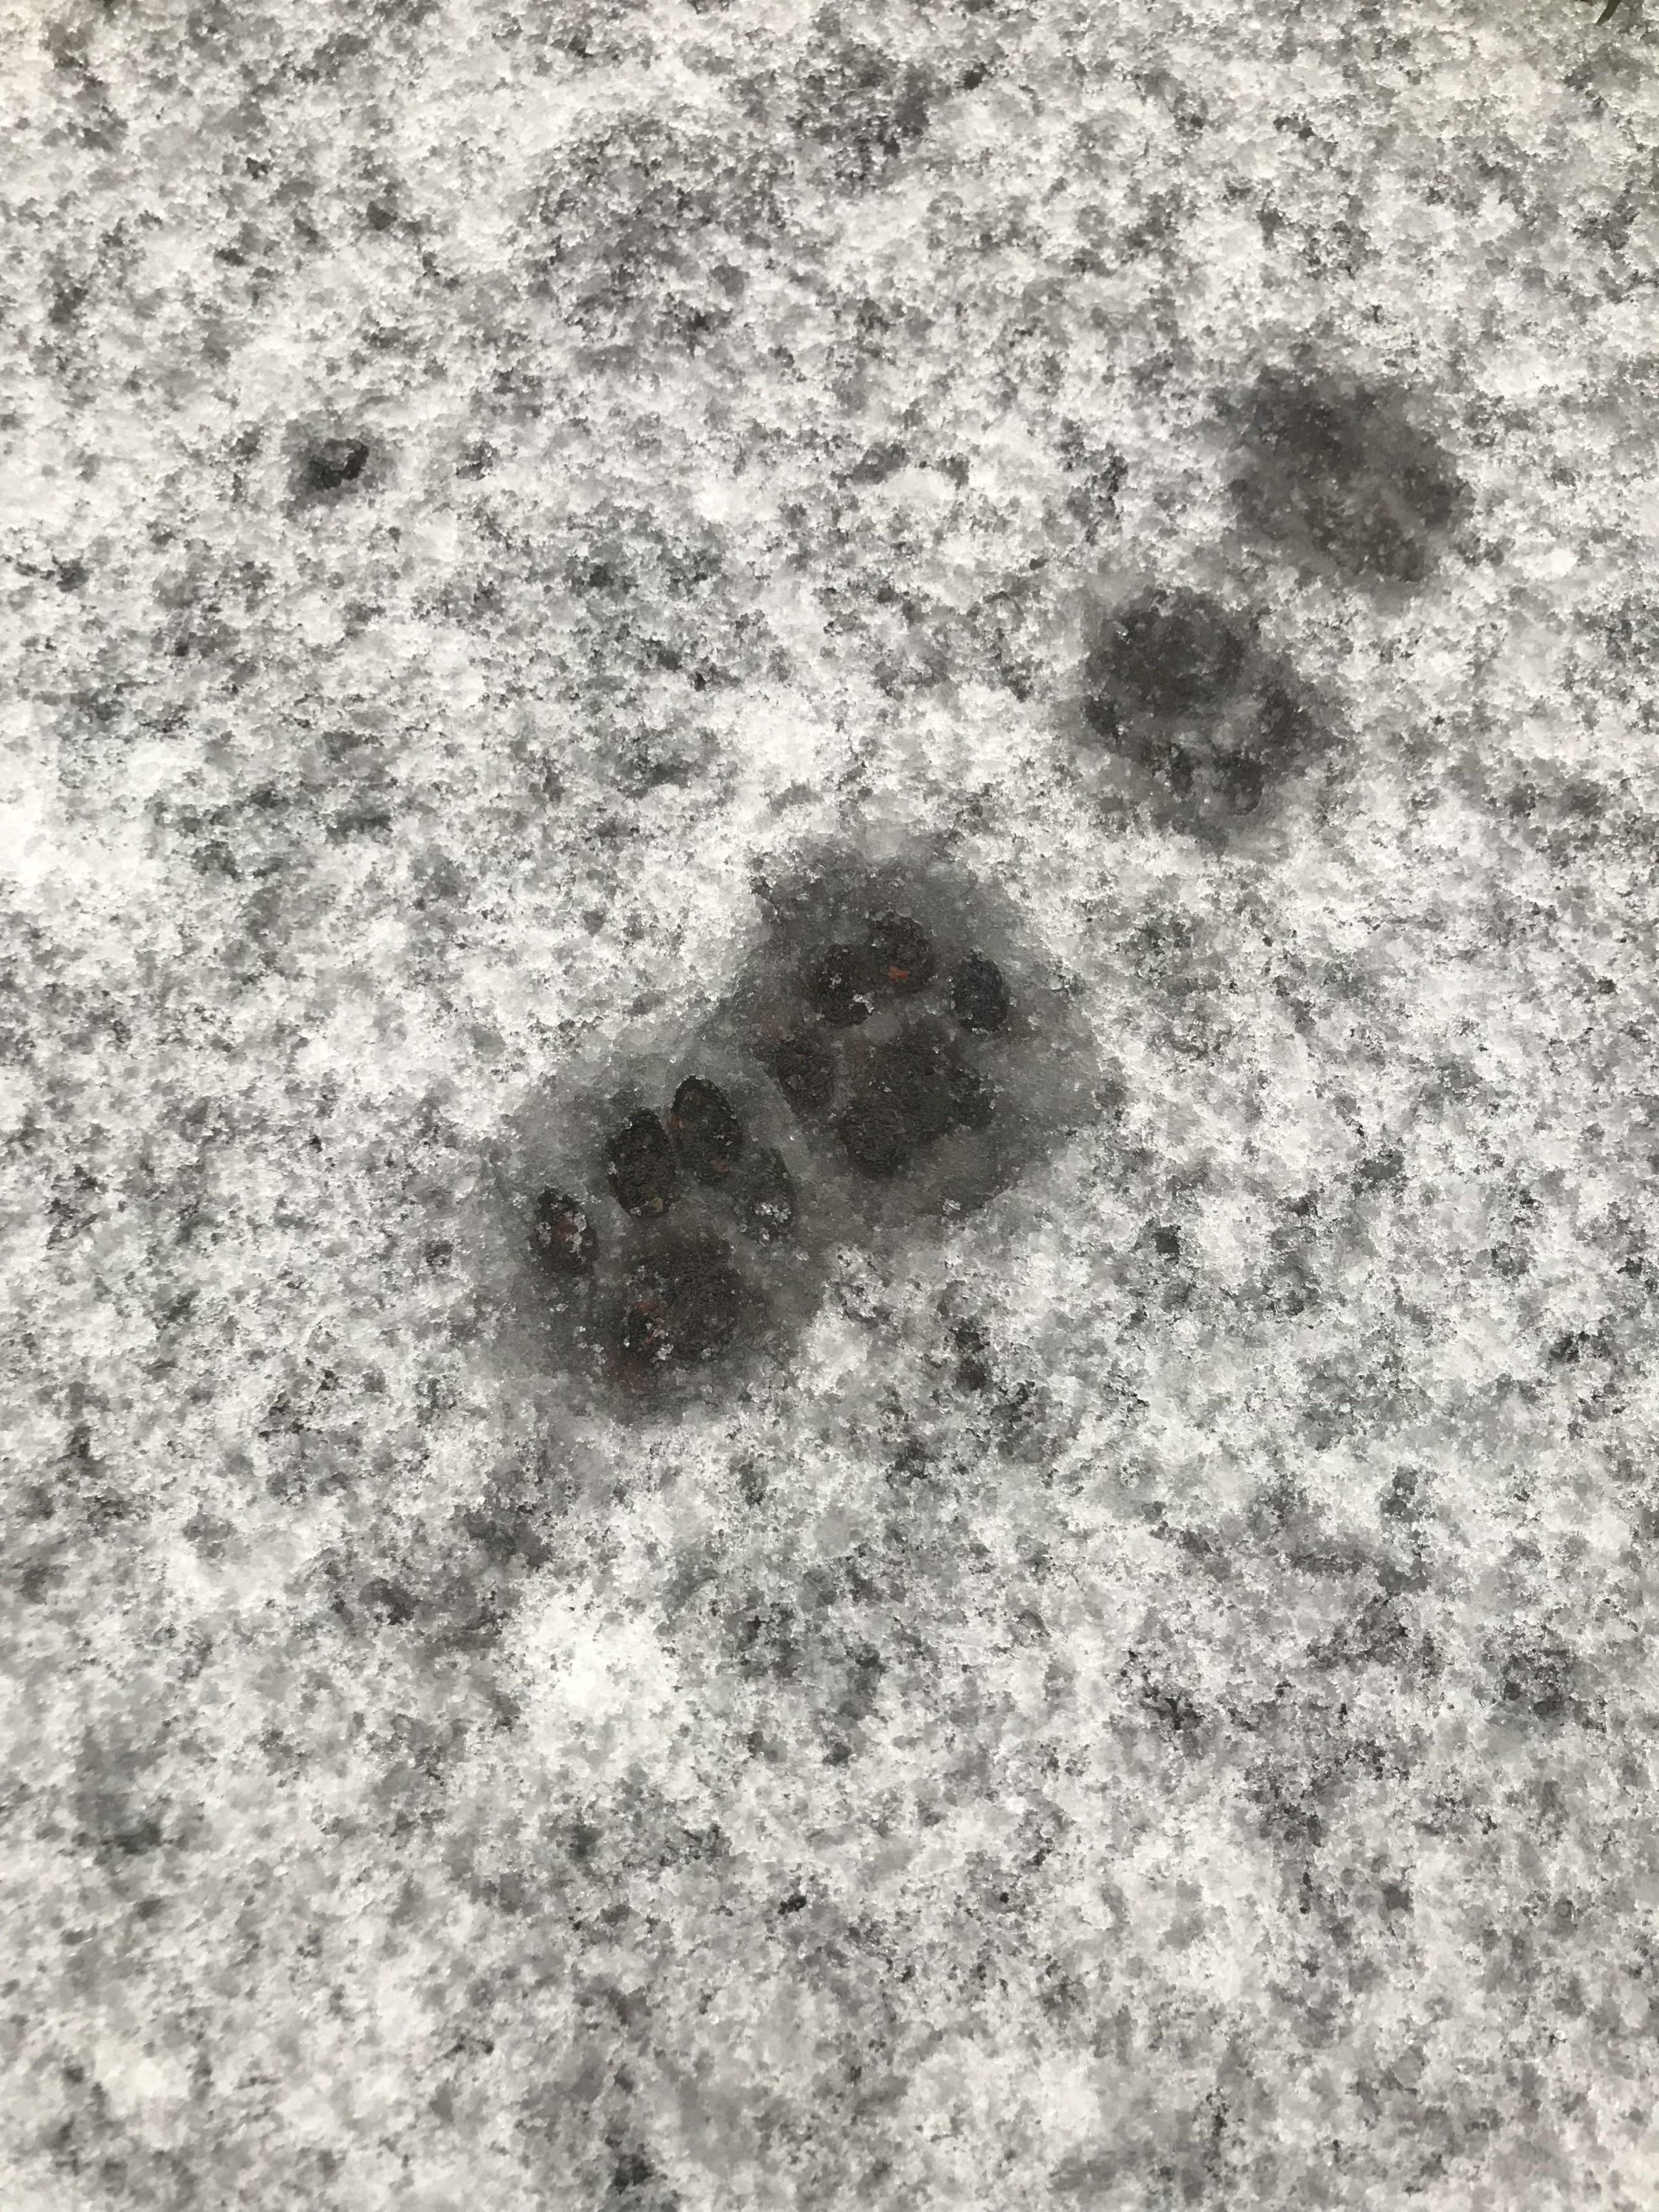 Figaro's paw prints in snow were used to create silver paw print jewellery